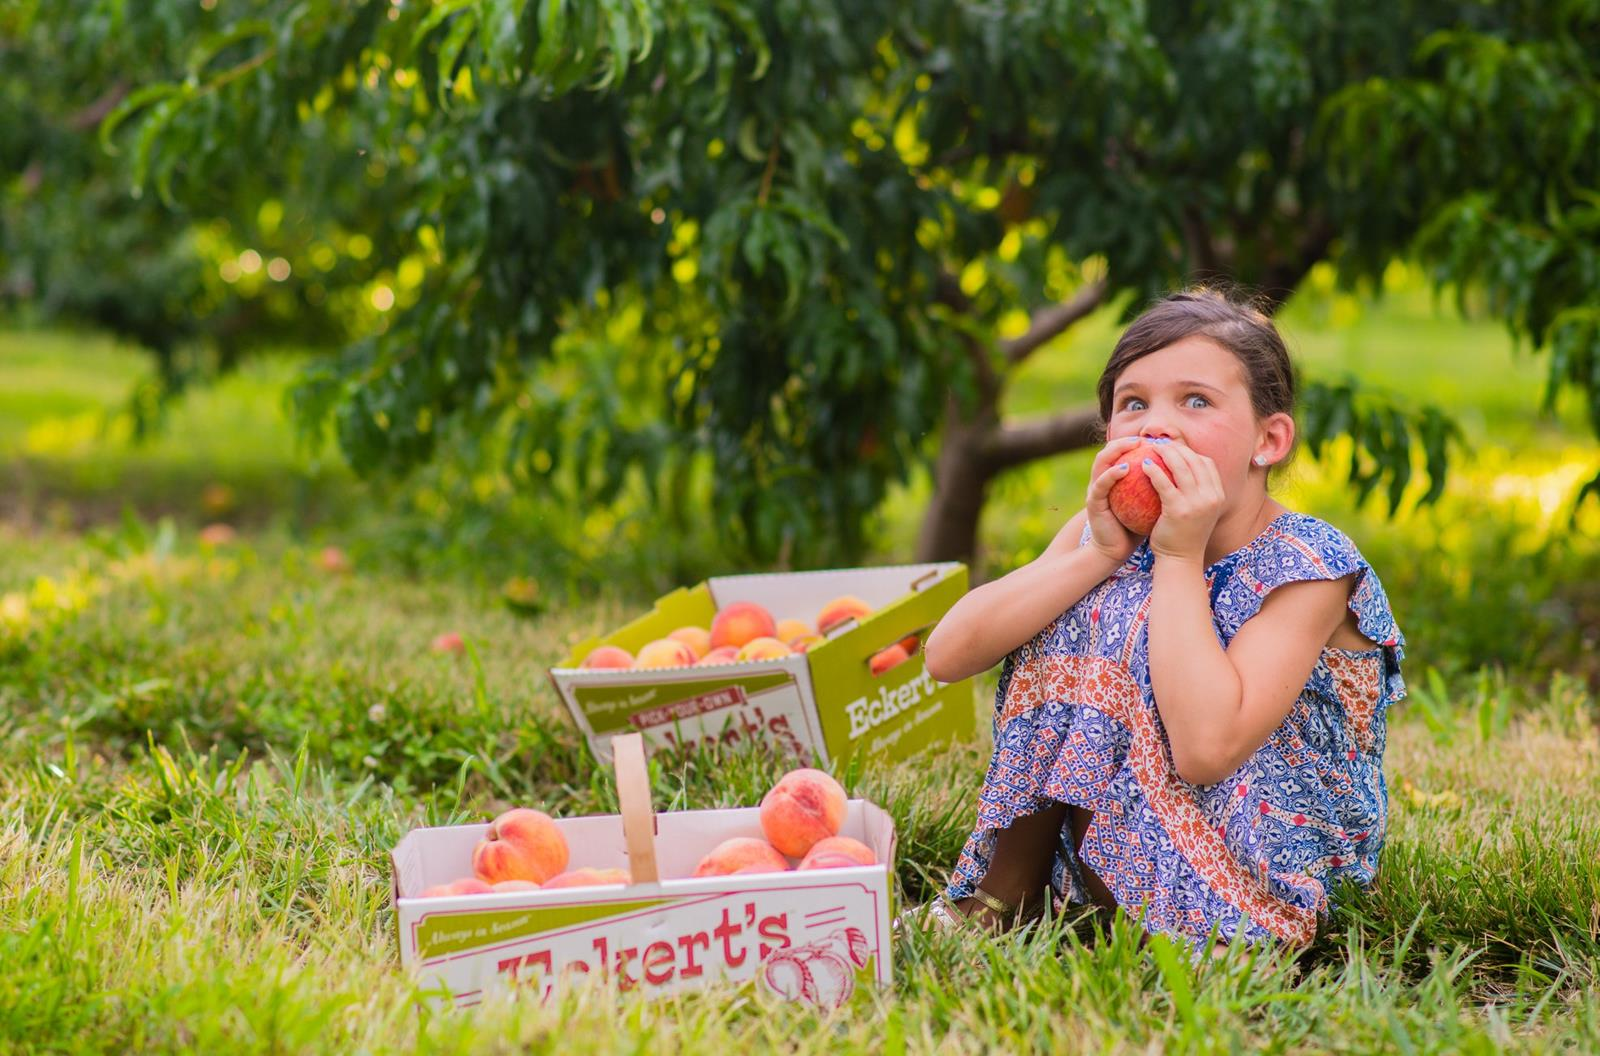 Eckert's girl with peaches